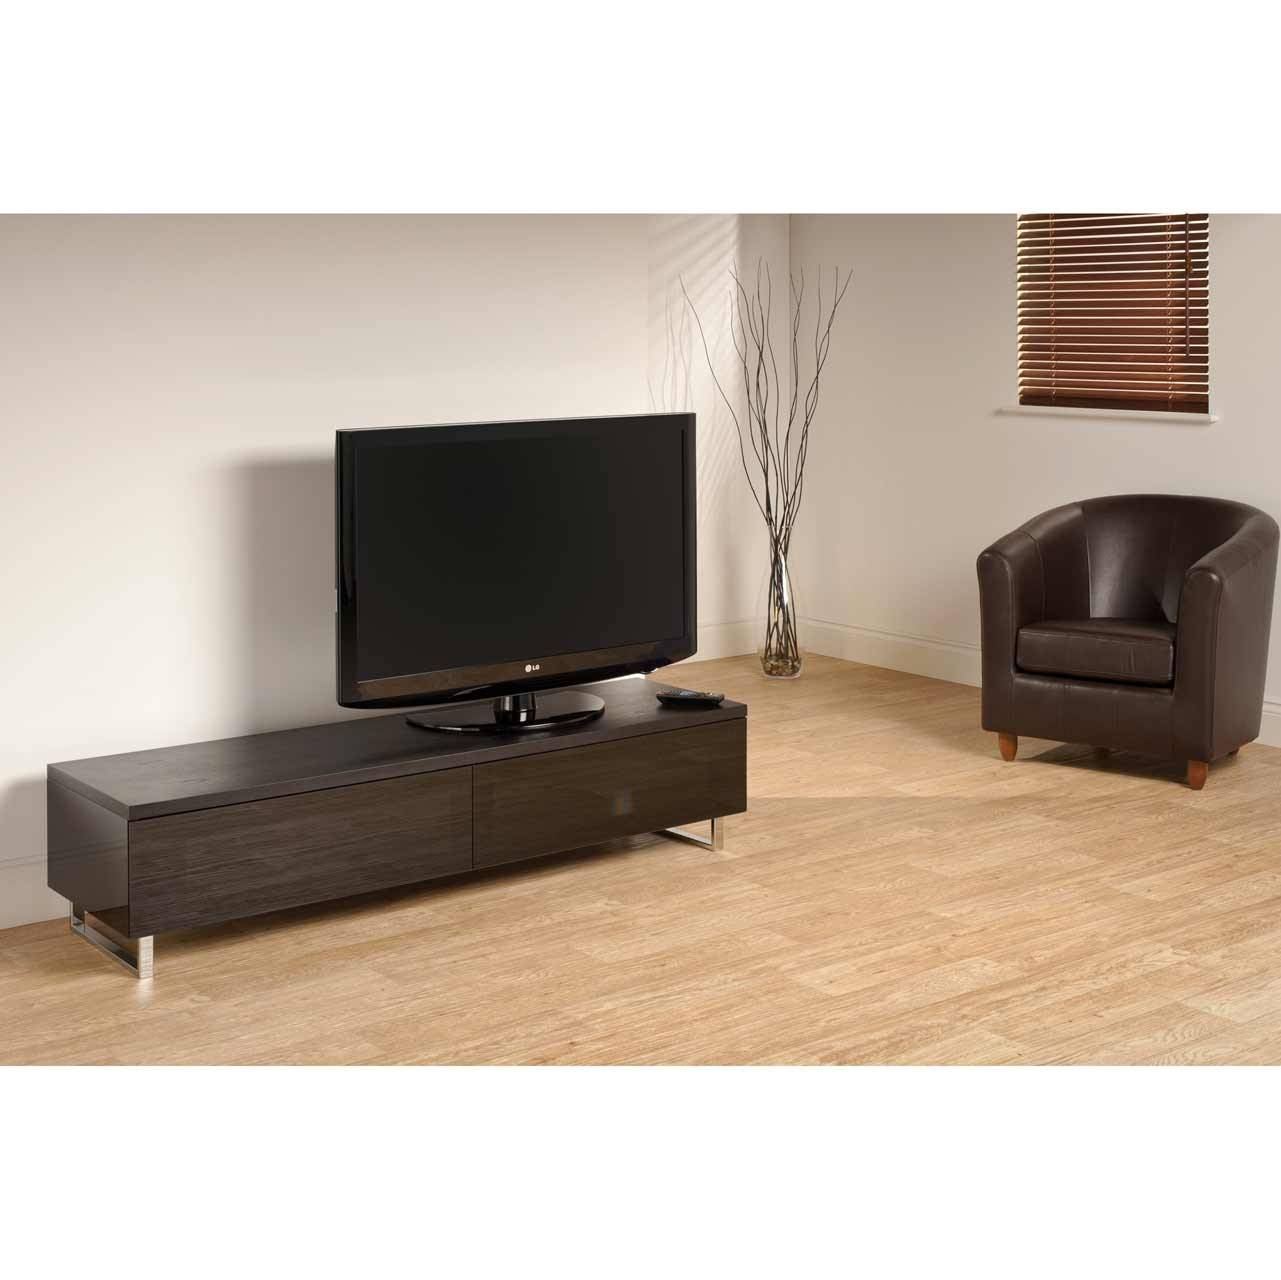 Pm160B | Techlink Tv Stand | For Tvs Up To 80"